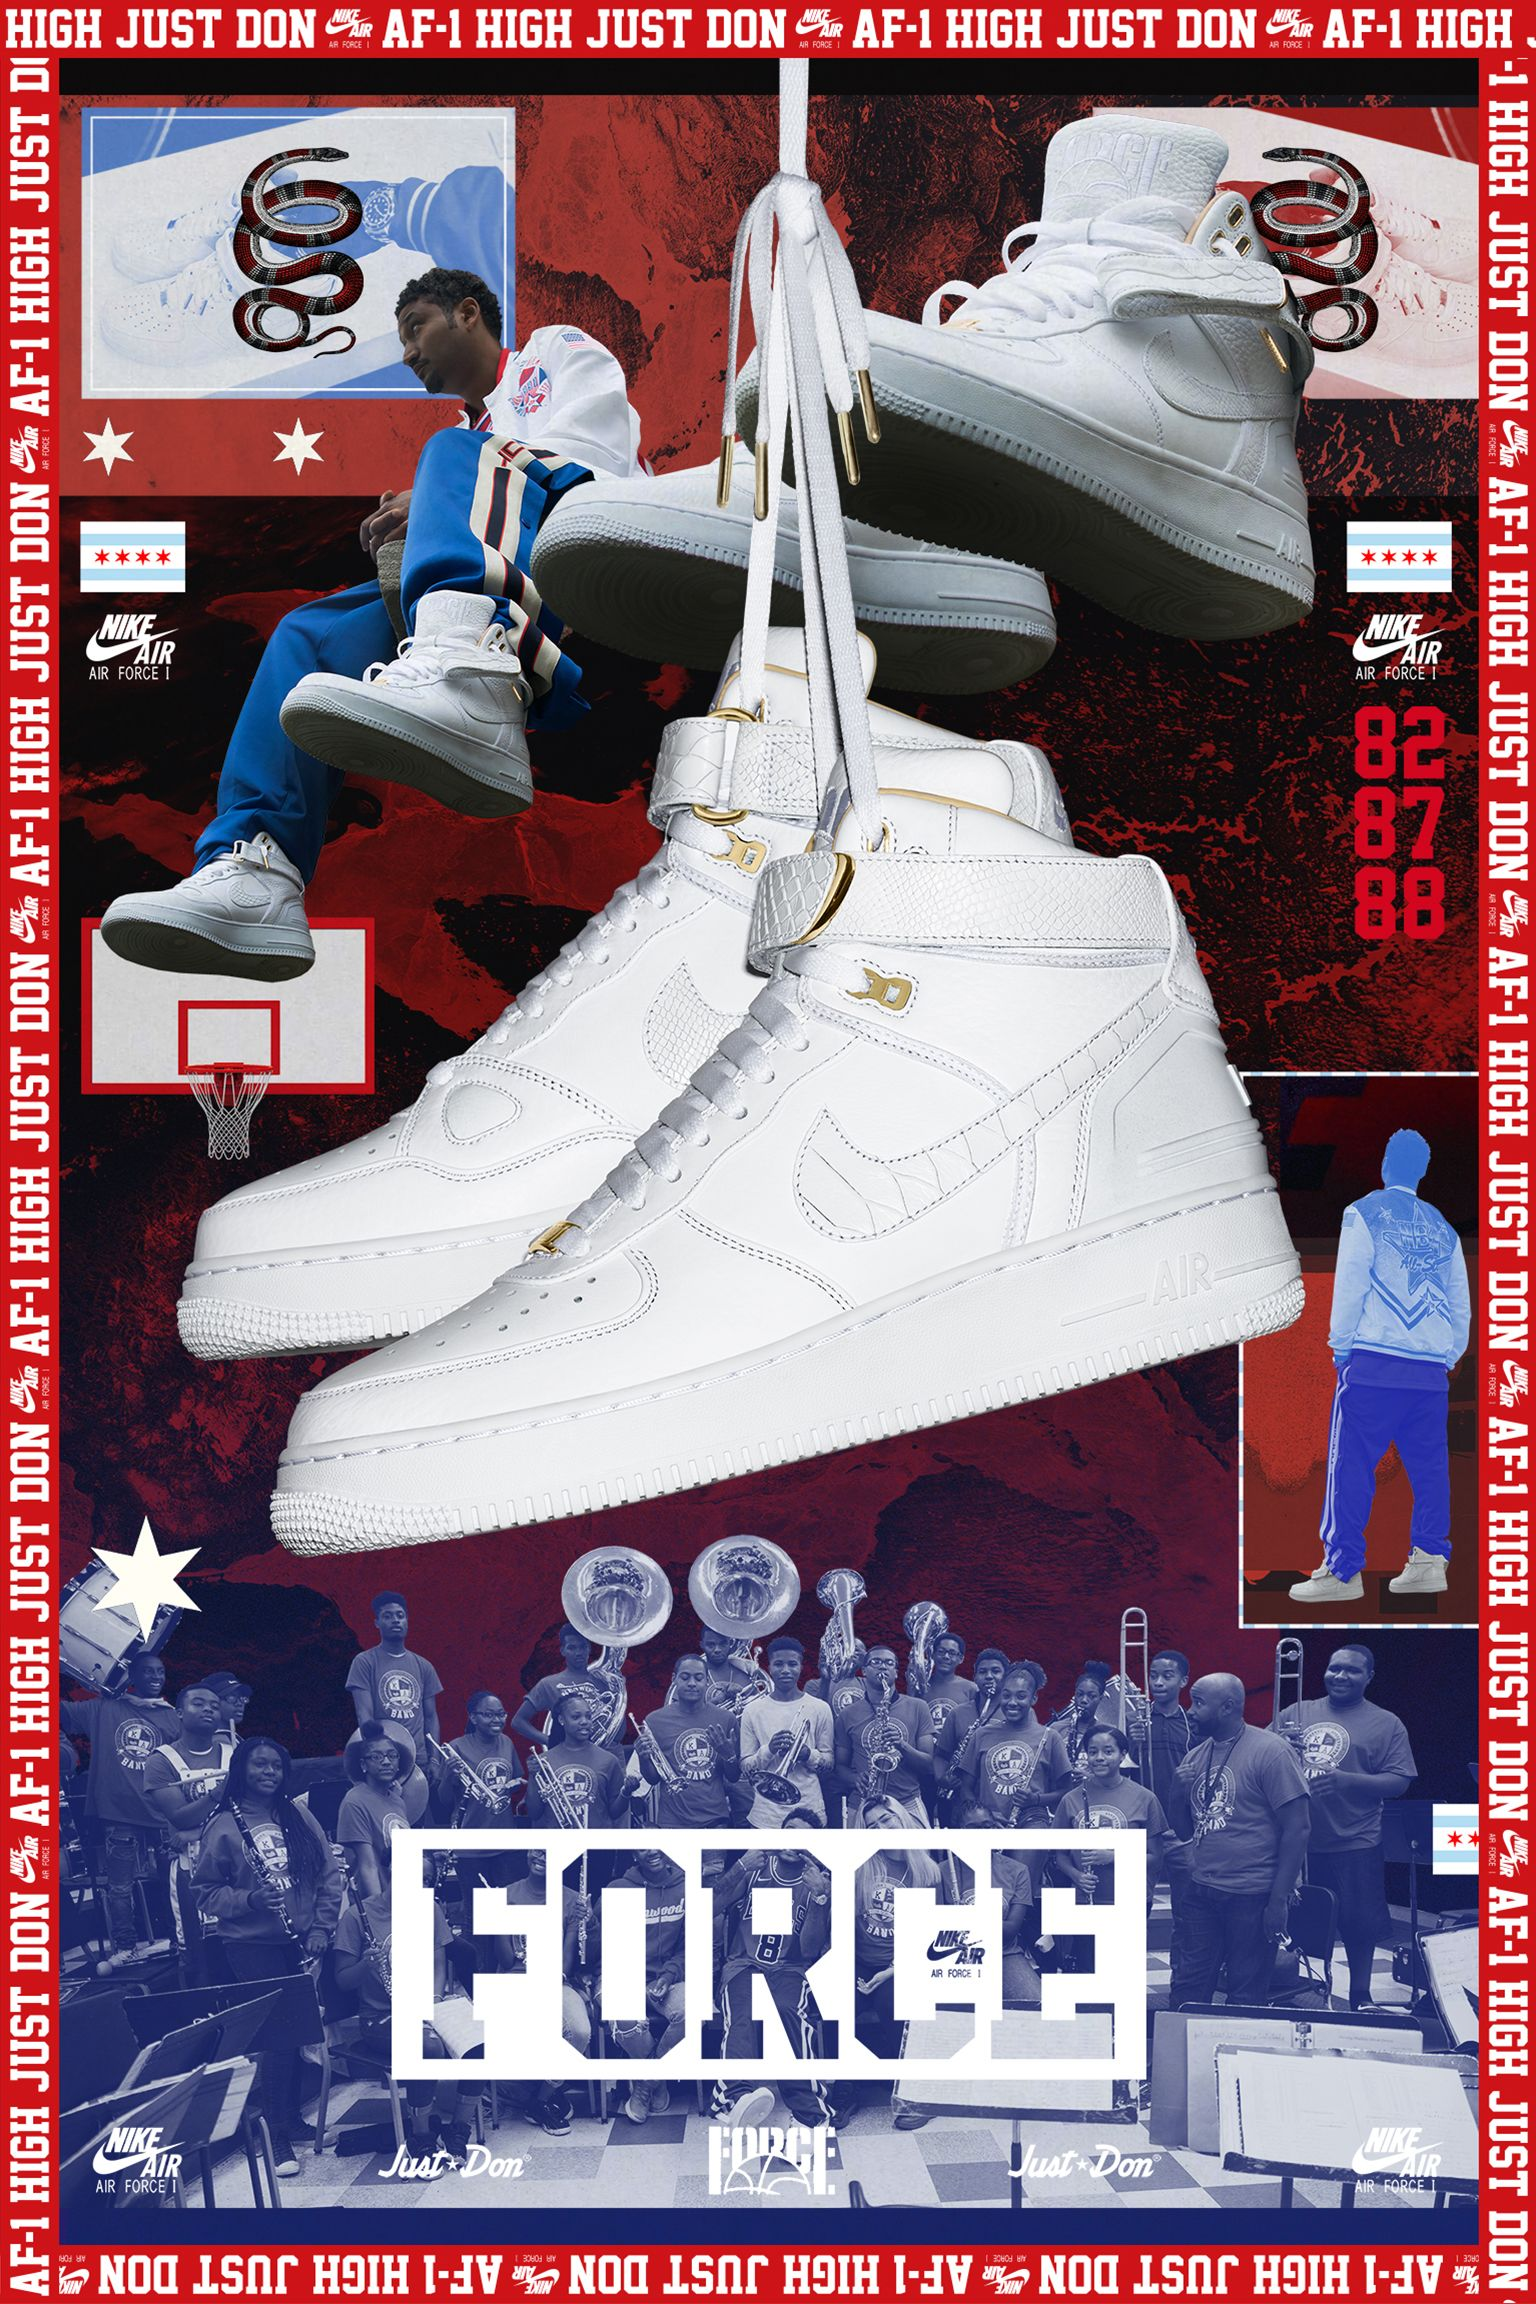 Nike Air Force 1 'Just Don' Release Date